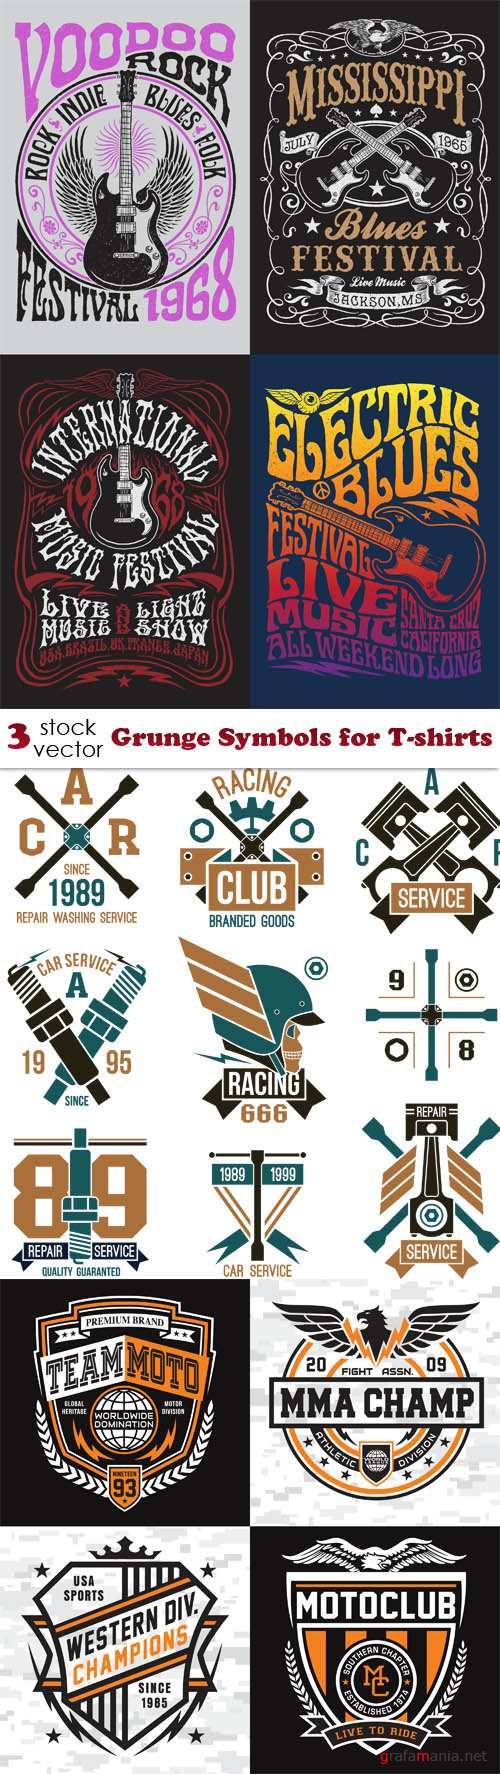 Vectors - Grunge Symbols for T-shirts